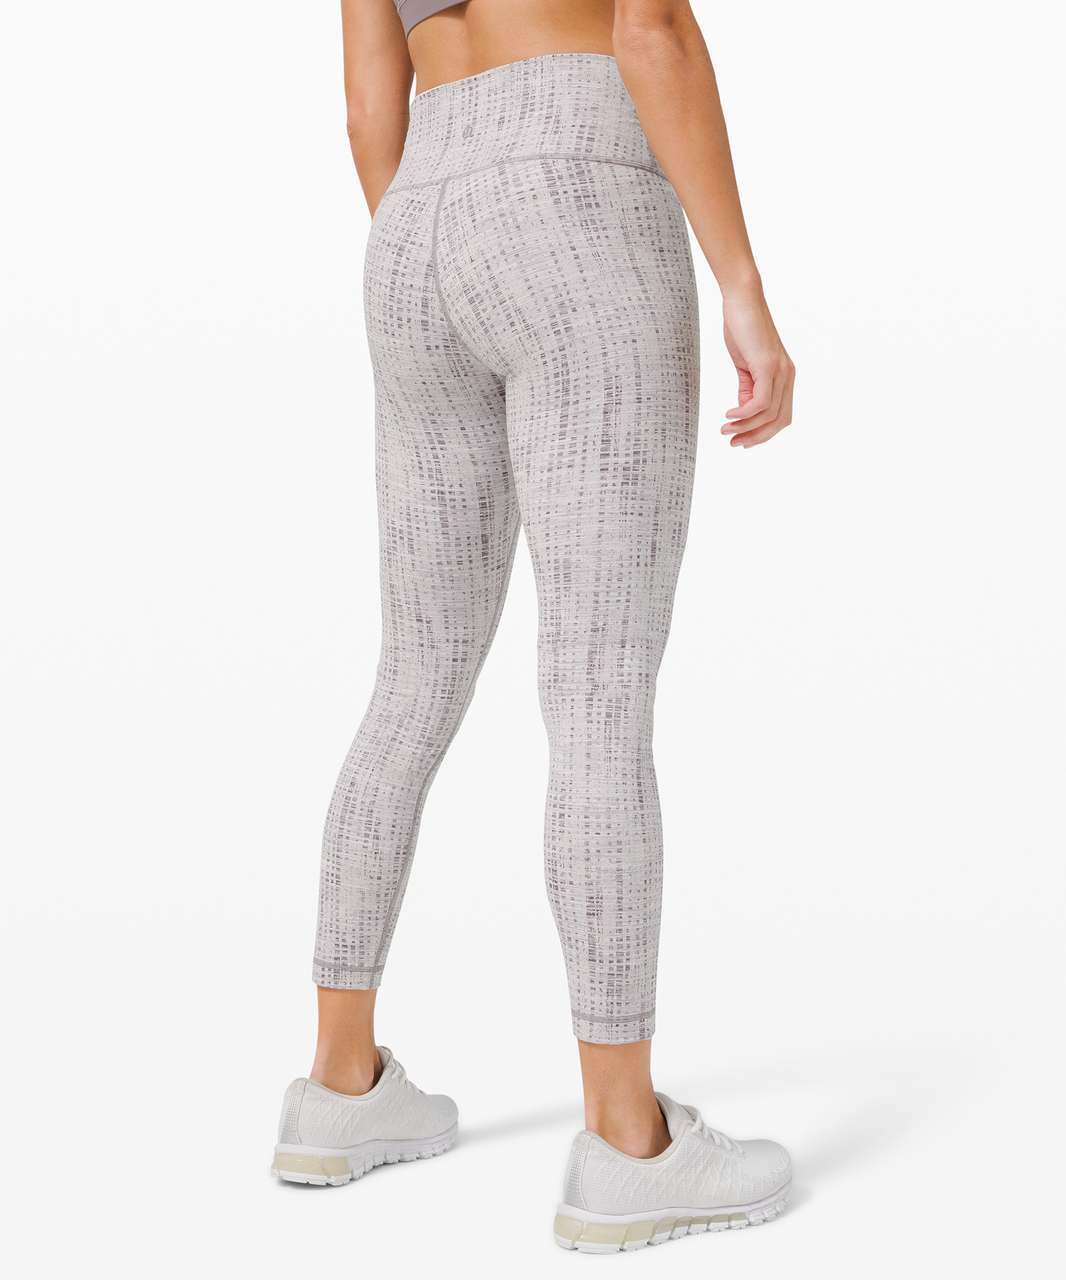 "Lululemon Wunder Under High-Rise Tight 25"" *Luxtreme - Action Jacquard Moonphase Silver Lining"